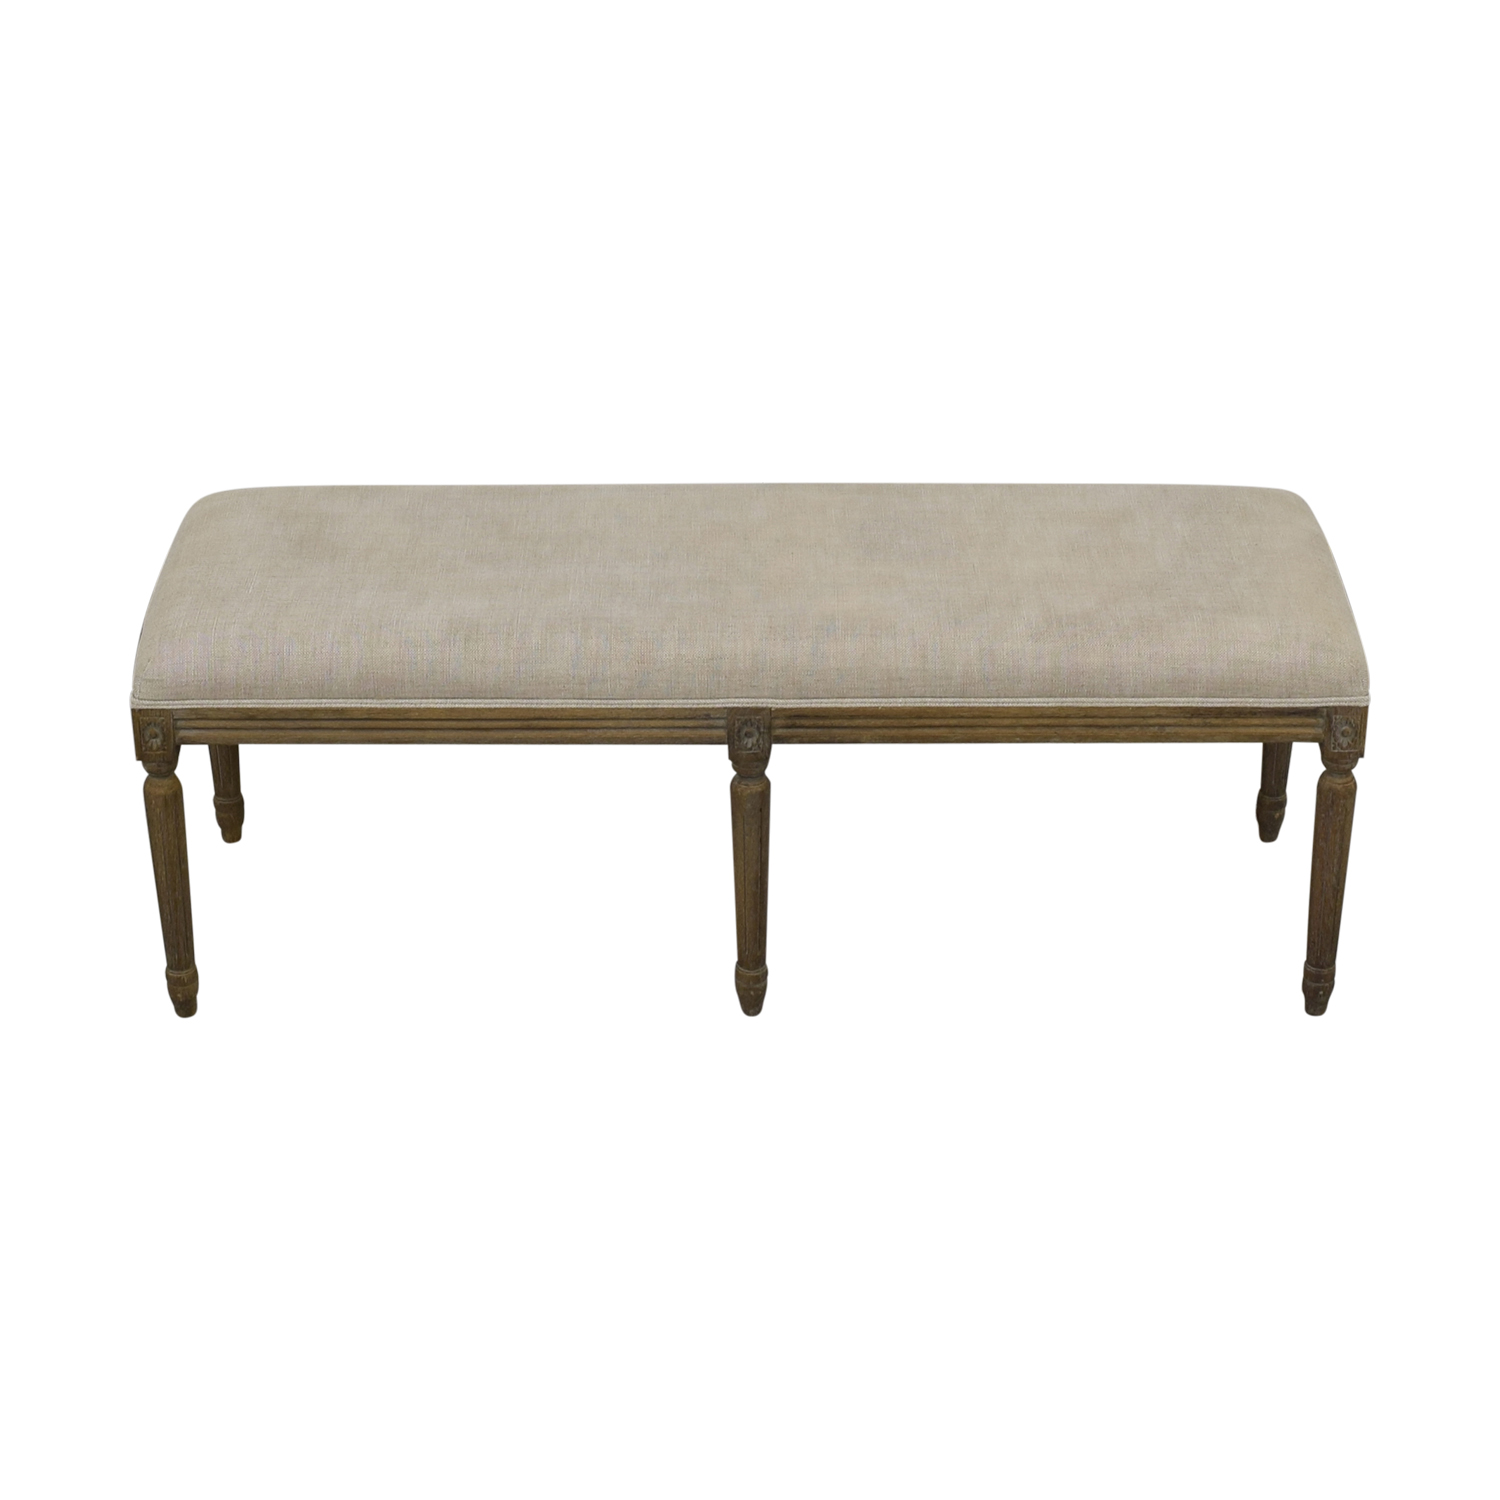 Restoration Hardware Restoration Hardware Louis Bench Chairs